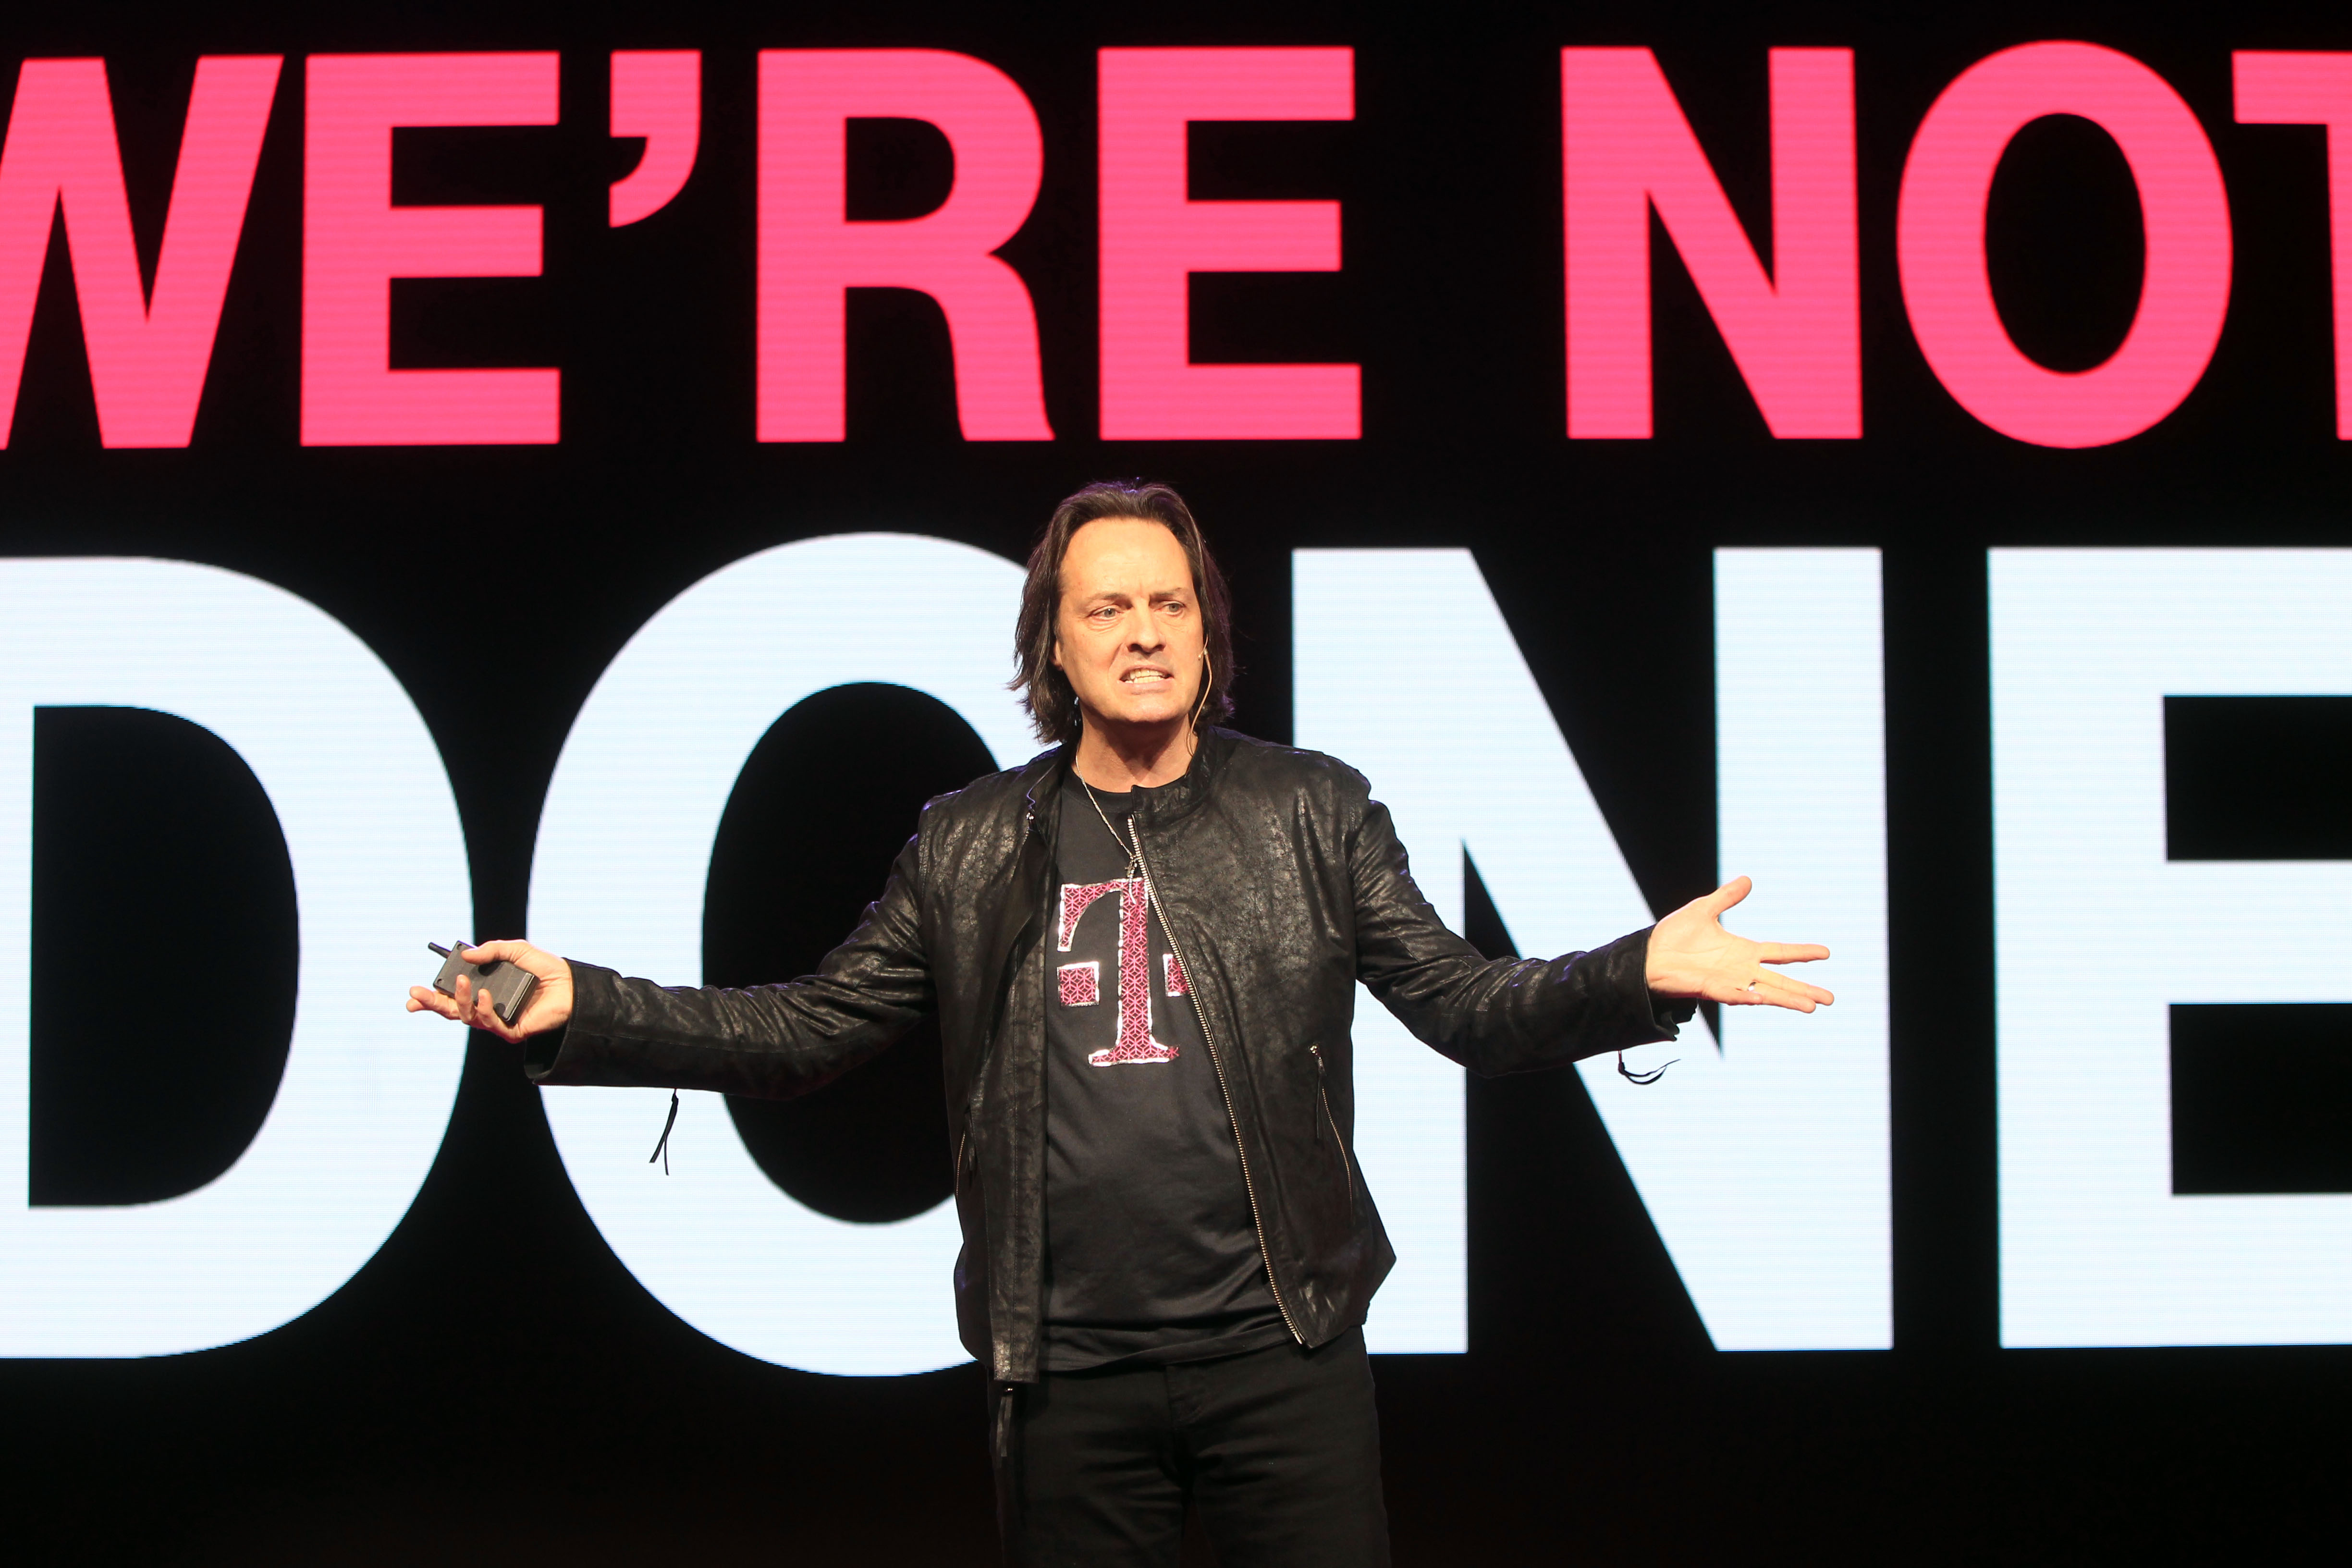 John Legere, CEO of T-Mobile, at a press conference on March 18, 2015 in New York City.